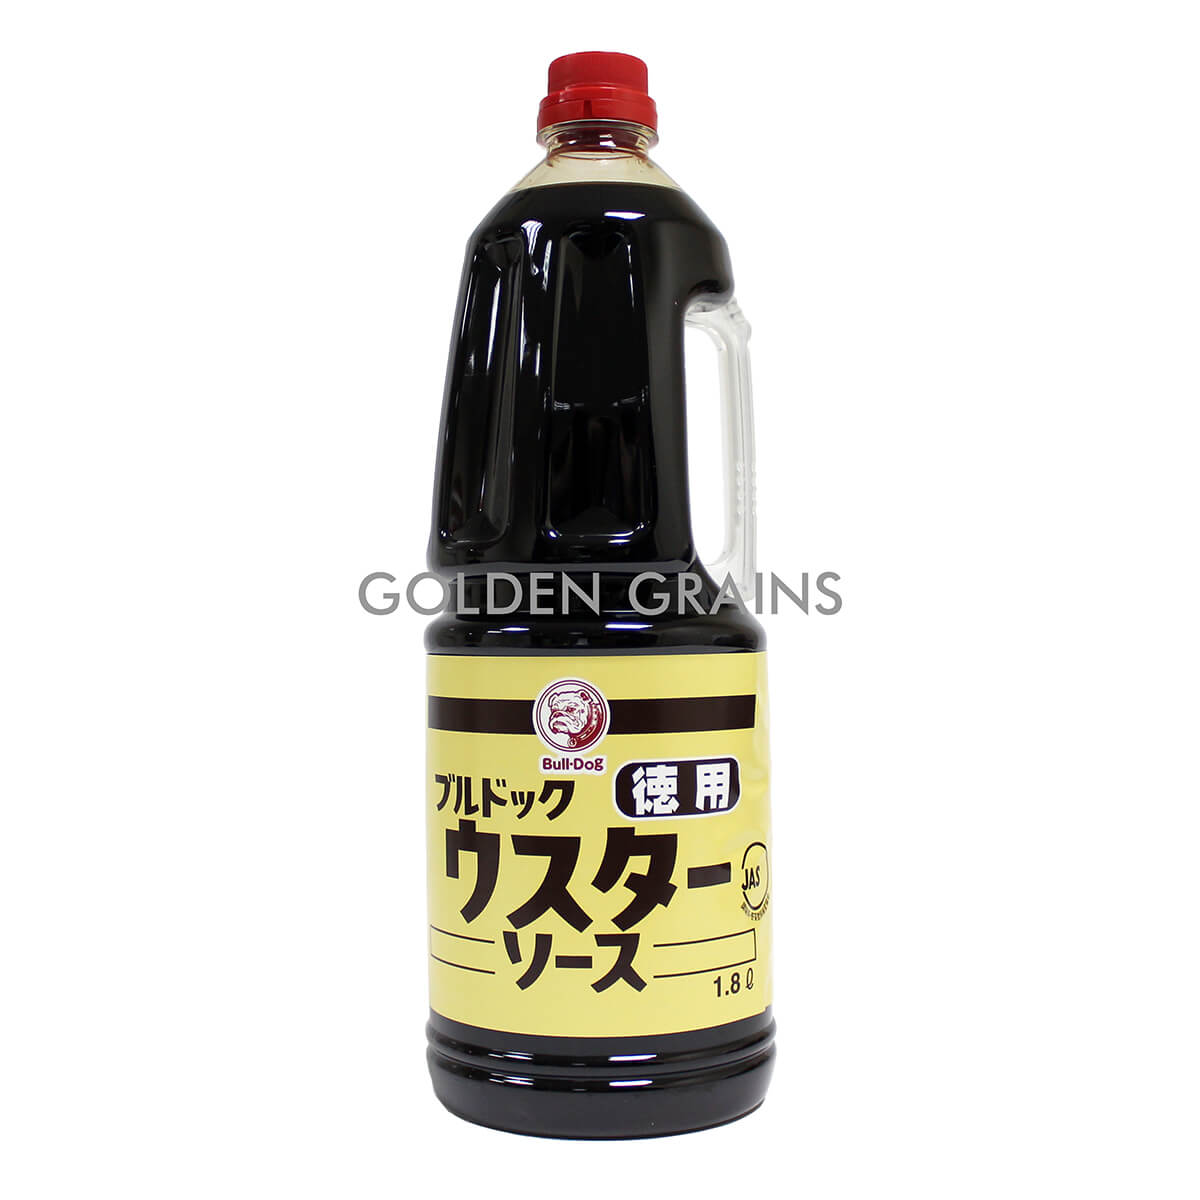 Golden Grains Dubai Export - Bull Dog - Soy Sauce - Front.jpg